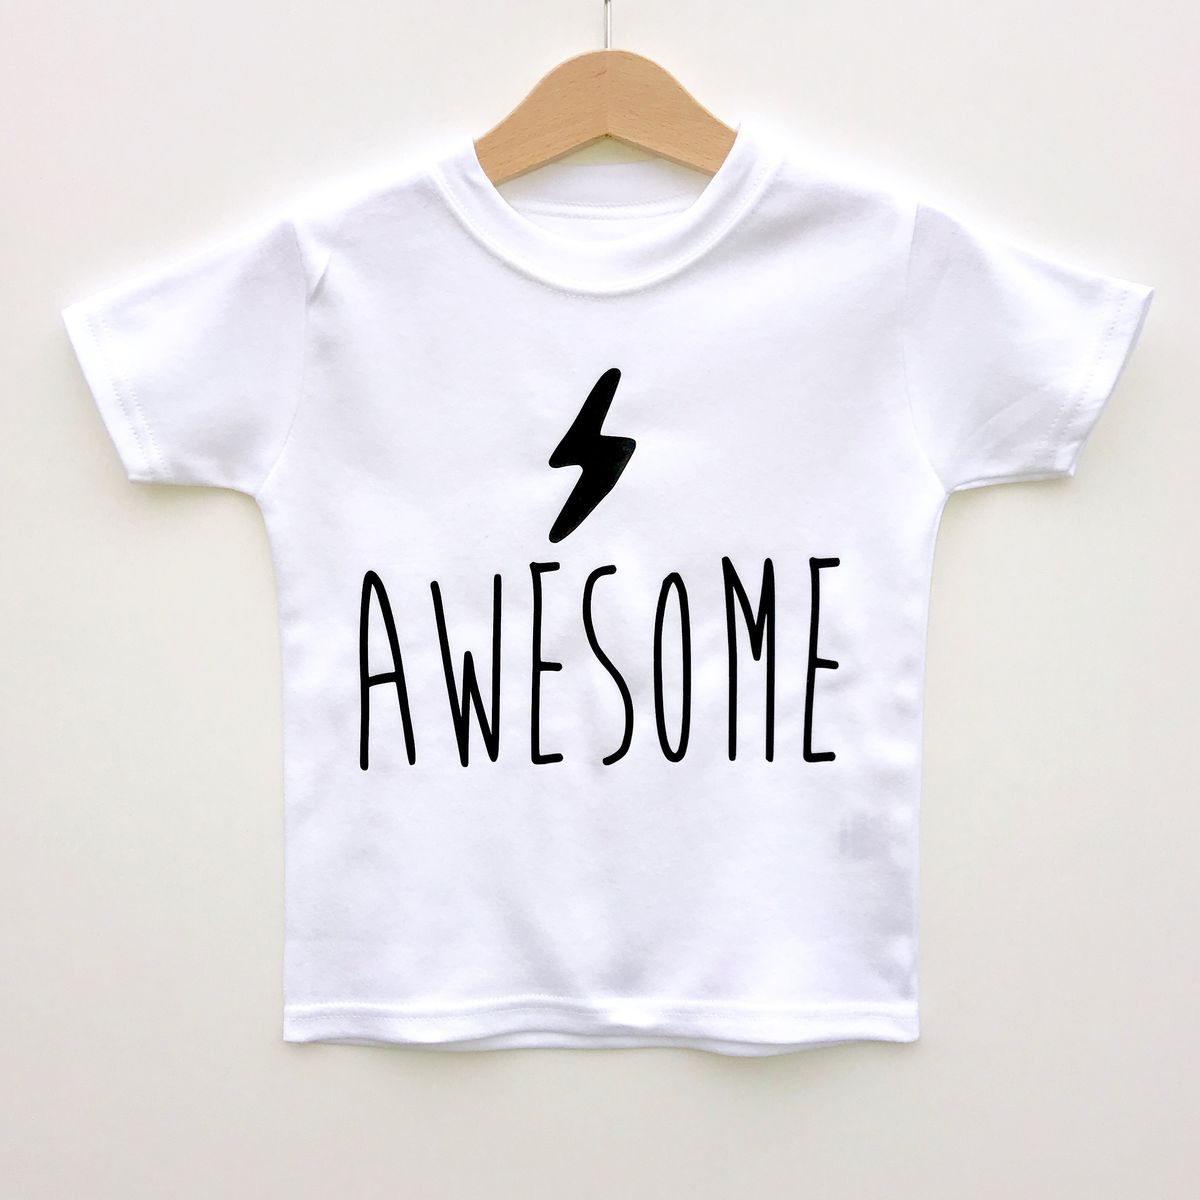 'Awesome' Lightning Bolt Black & White Kids T-Shirts (various sizes) - product images  of